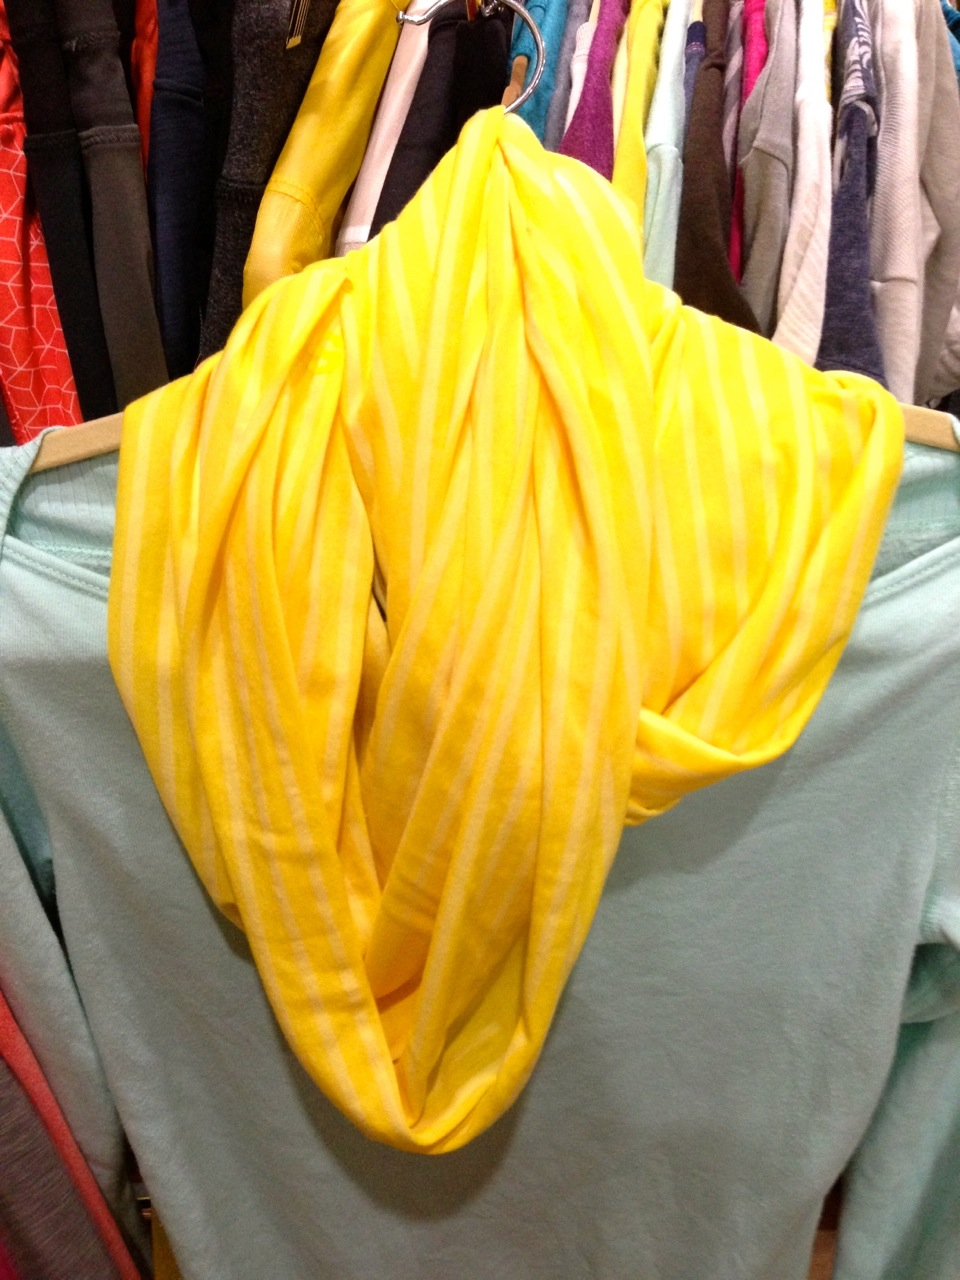 I am obsessed with this yellow Runfinity scarf!